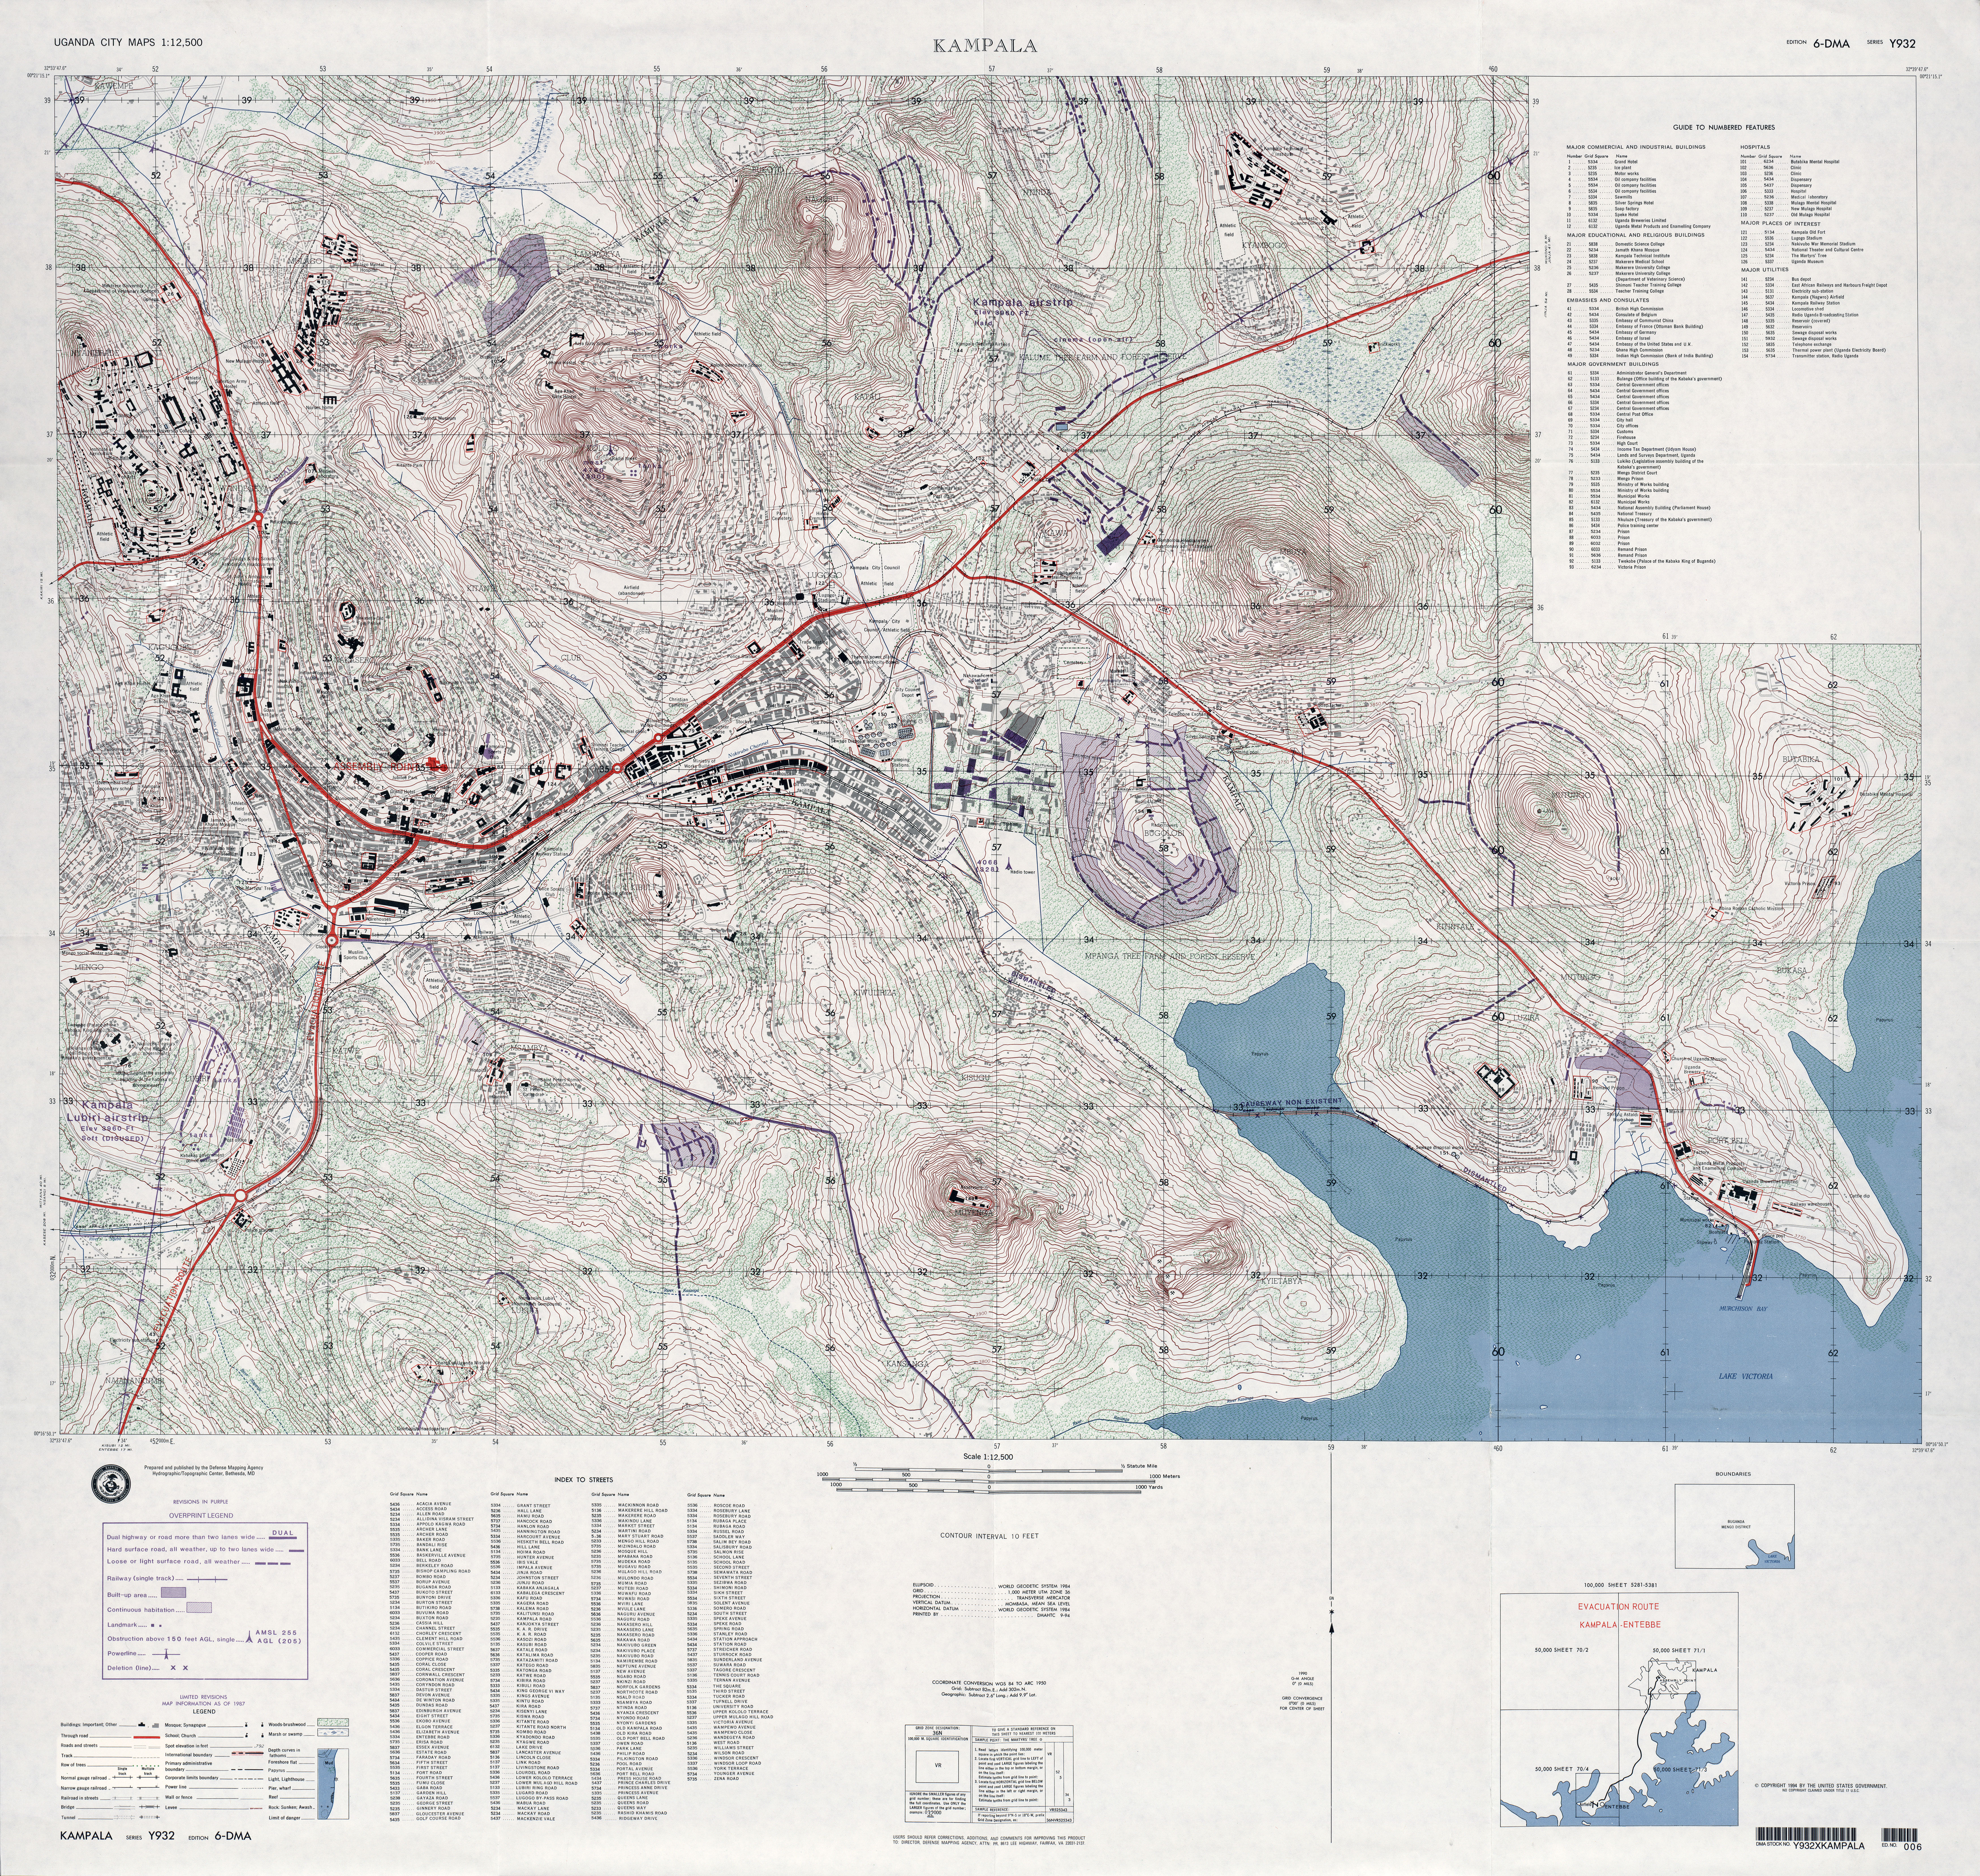 Uganda Maps PerryCastañeda Map Collection UT Library Online - Dma map us 2016